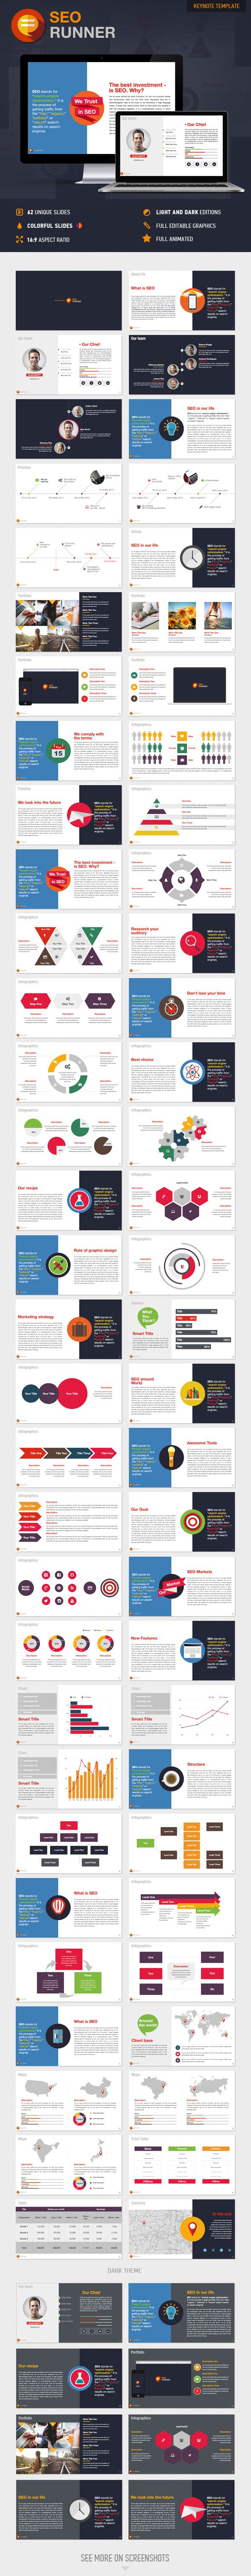 SEO Runner Keynote Presentation Template | Buy and Download: http://graphicriver.net/item/seo-runner-keynote-presentation-template/9554217?ref=ksioks